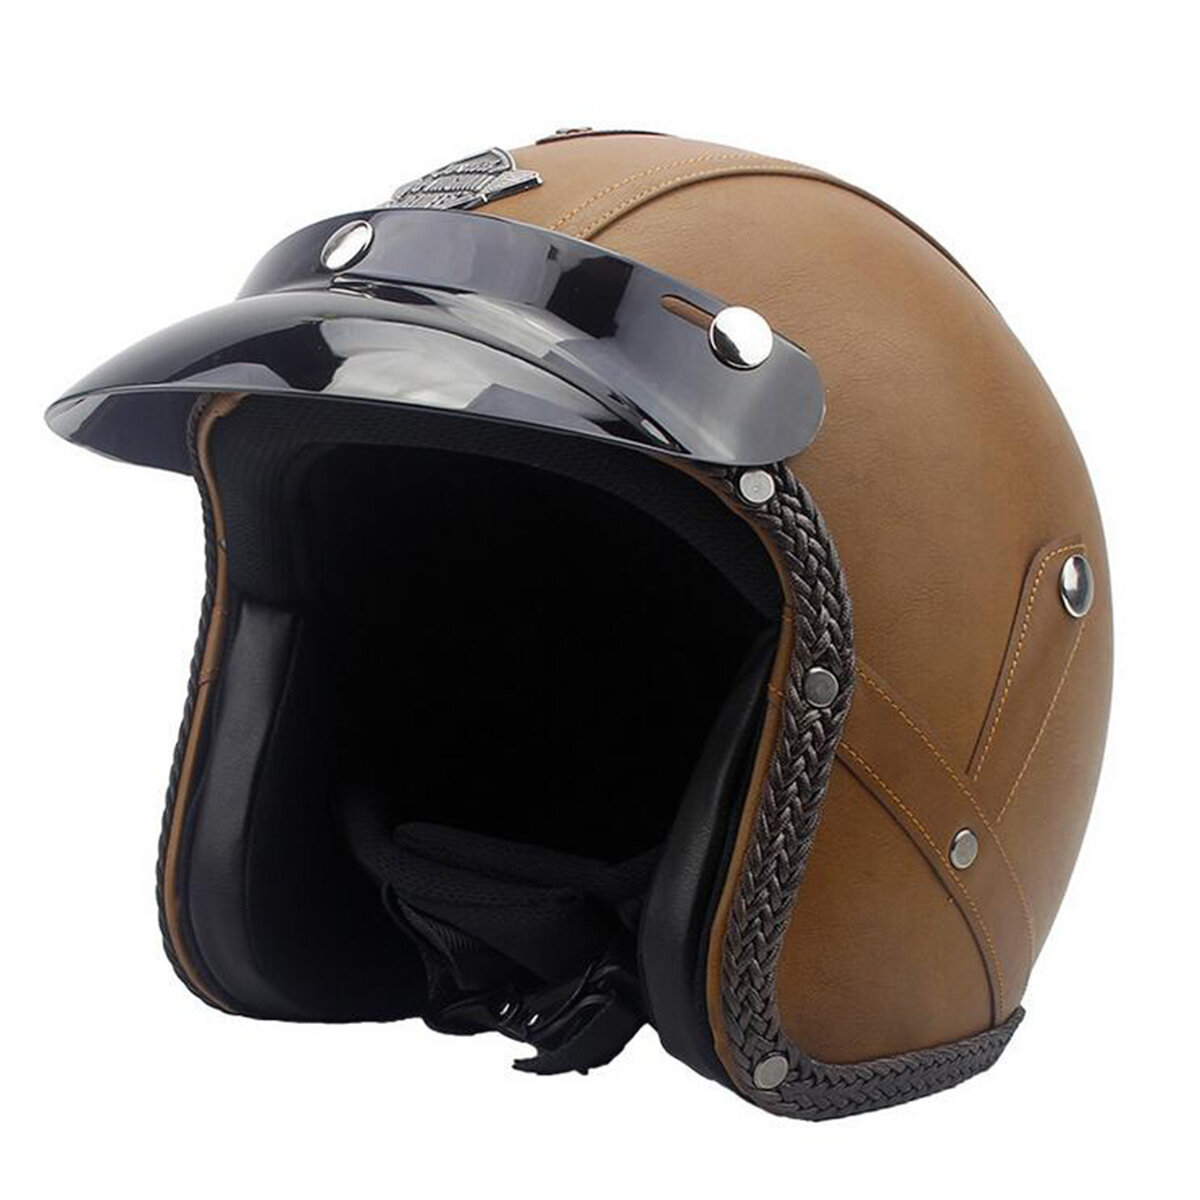 DOT 3/4 Visage Cuir Vintage Casque De Moto Moto Scooter Crash Visor ML XL